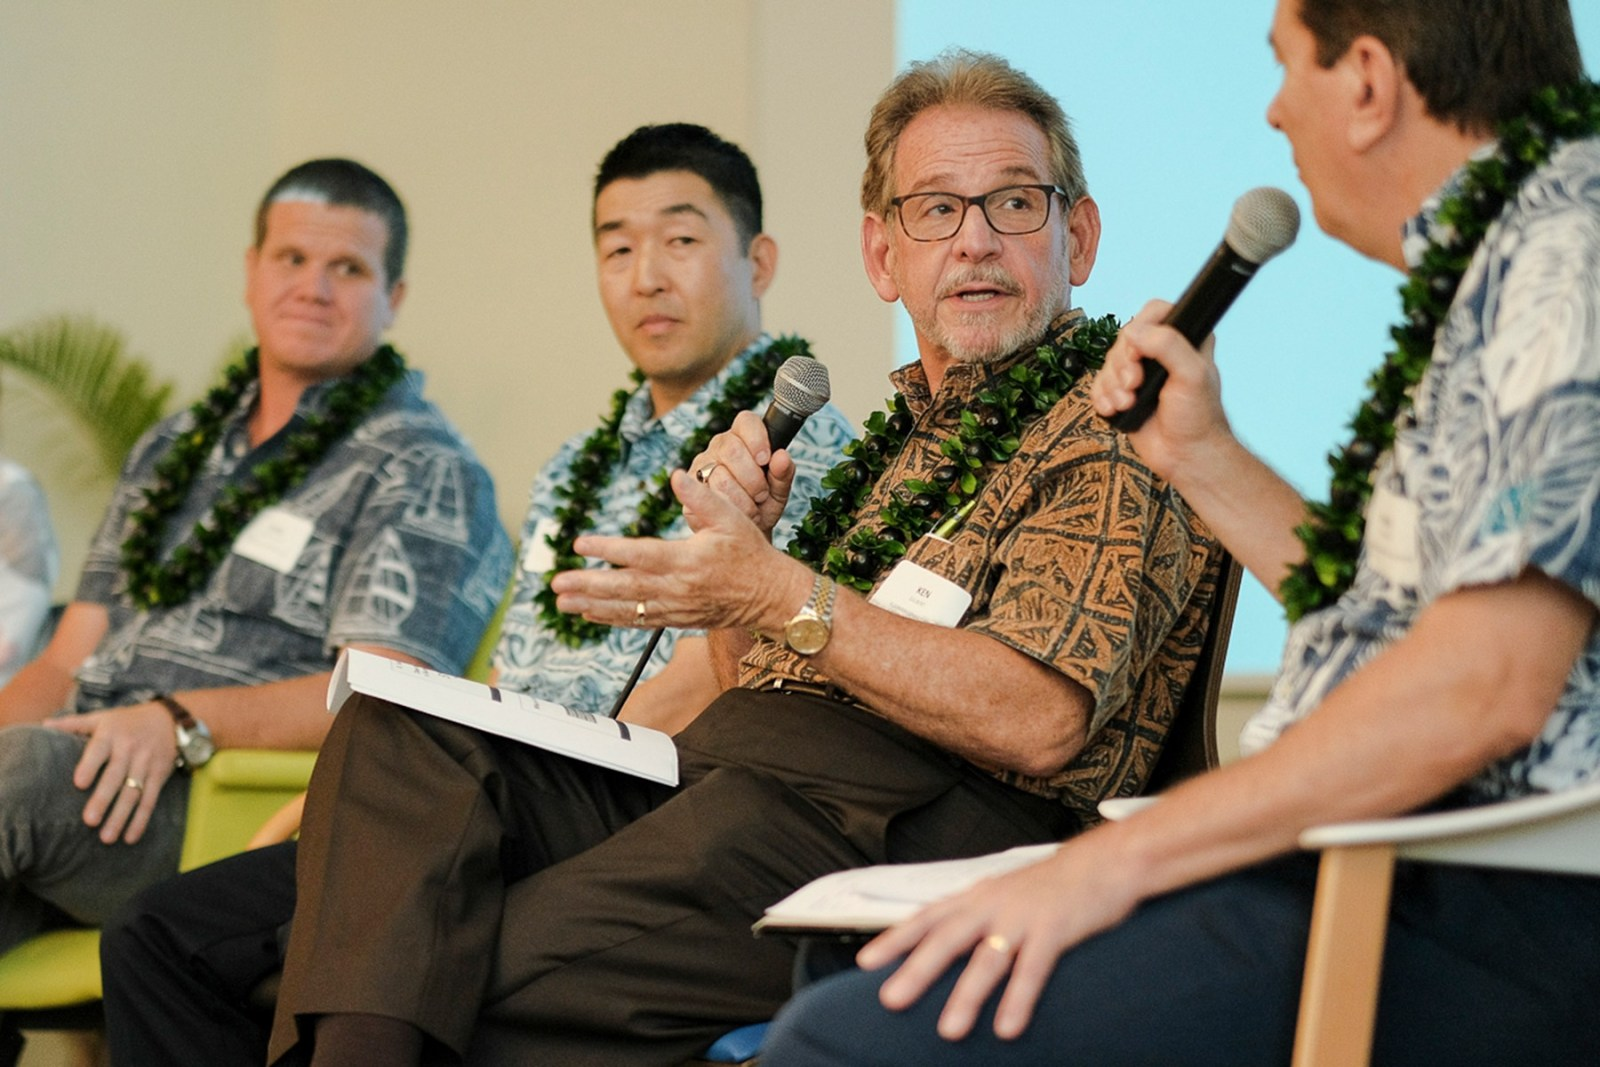 Ken Gilbert on Honolulu panel discussing Family Business and Consulting in Honolulu, Hawaii